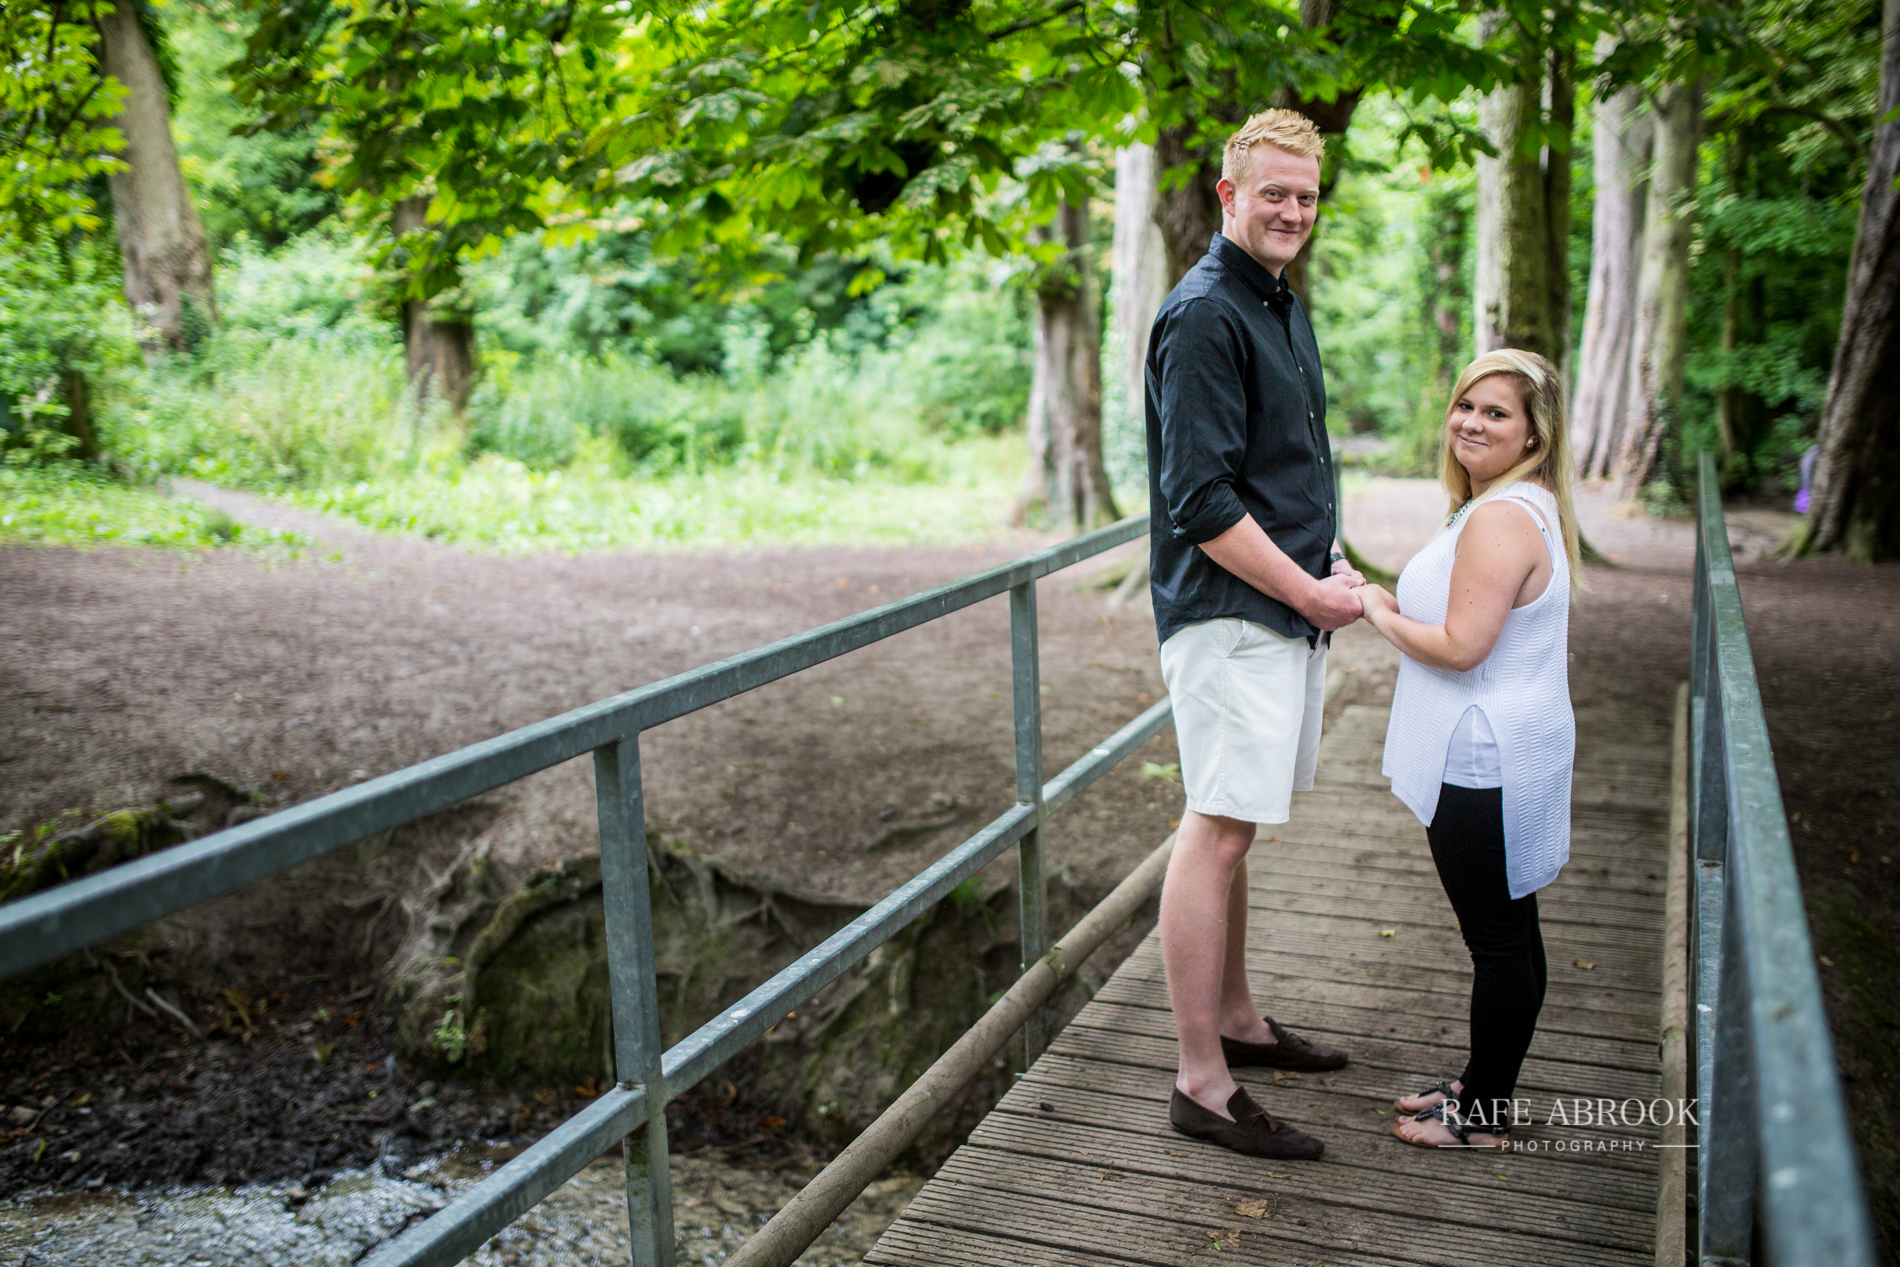 lisa & danny engagement shoot barton hills barton-le-clay bedfordshire-1005.jpg